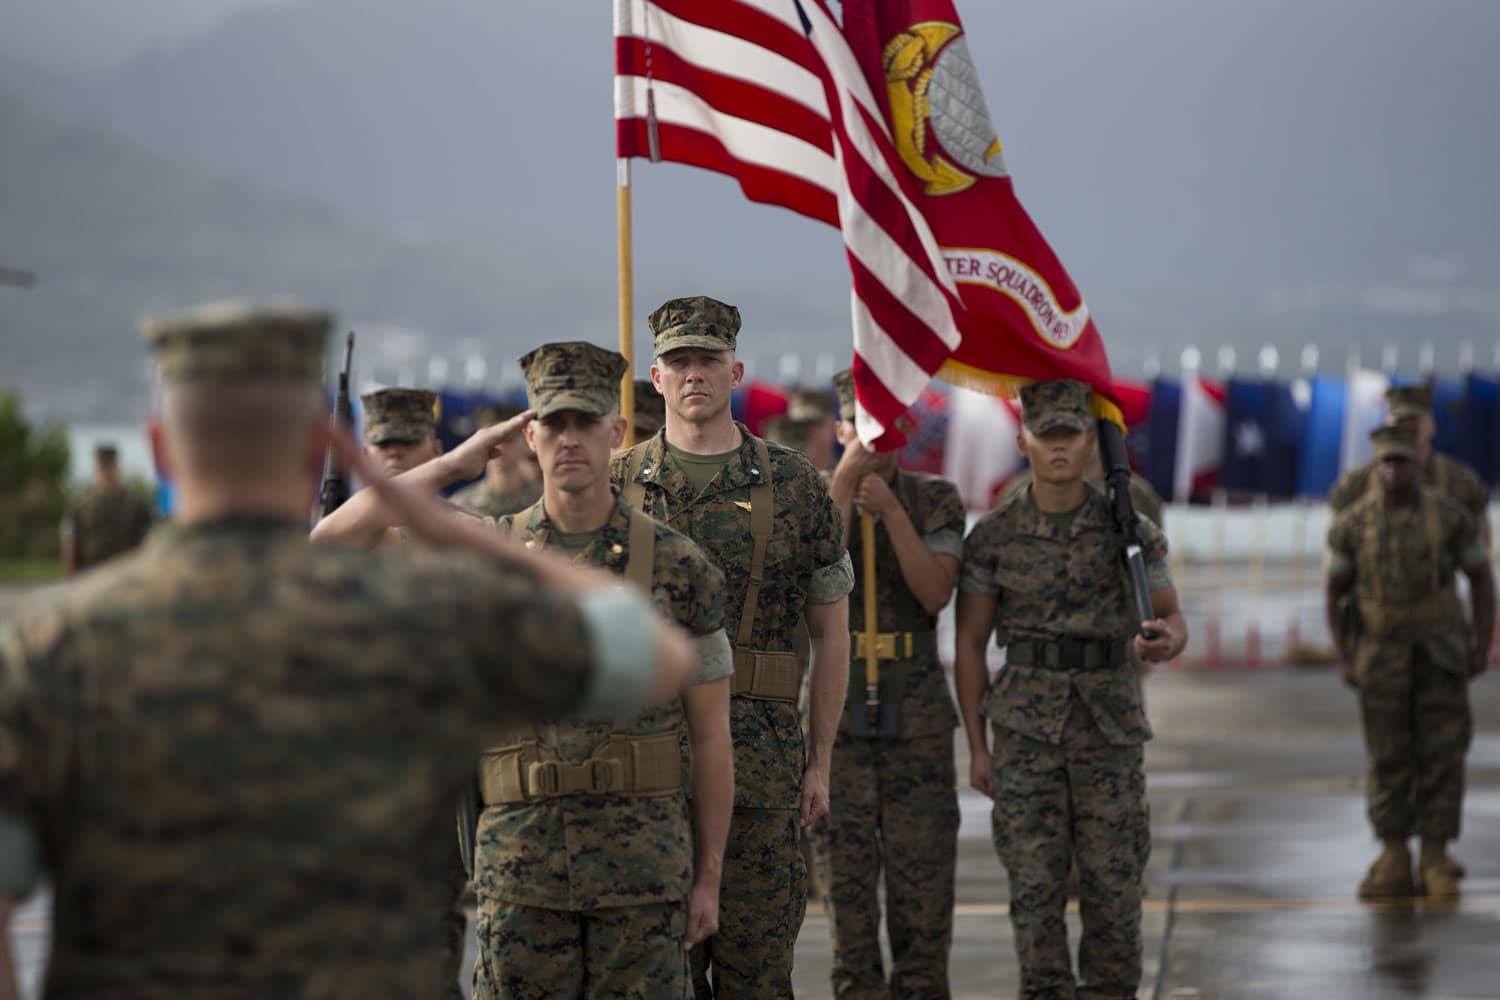 U.S. Marine Corps Maj. David J. Bachta, commander of troops for the Marine Heavy Helicopter Squadron 463 Change of Command, salutes Col. Christopher Patton, commanding officer, Marine Aircraft Group 24.